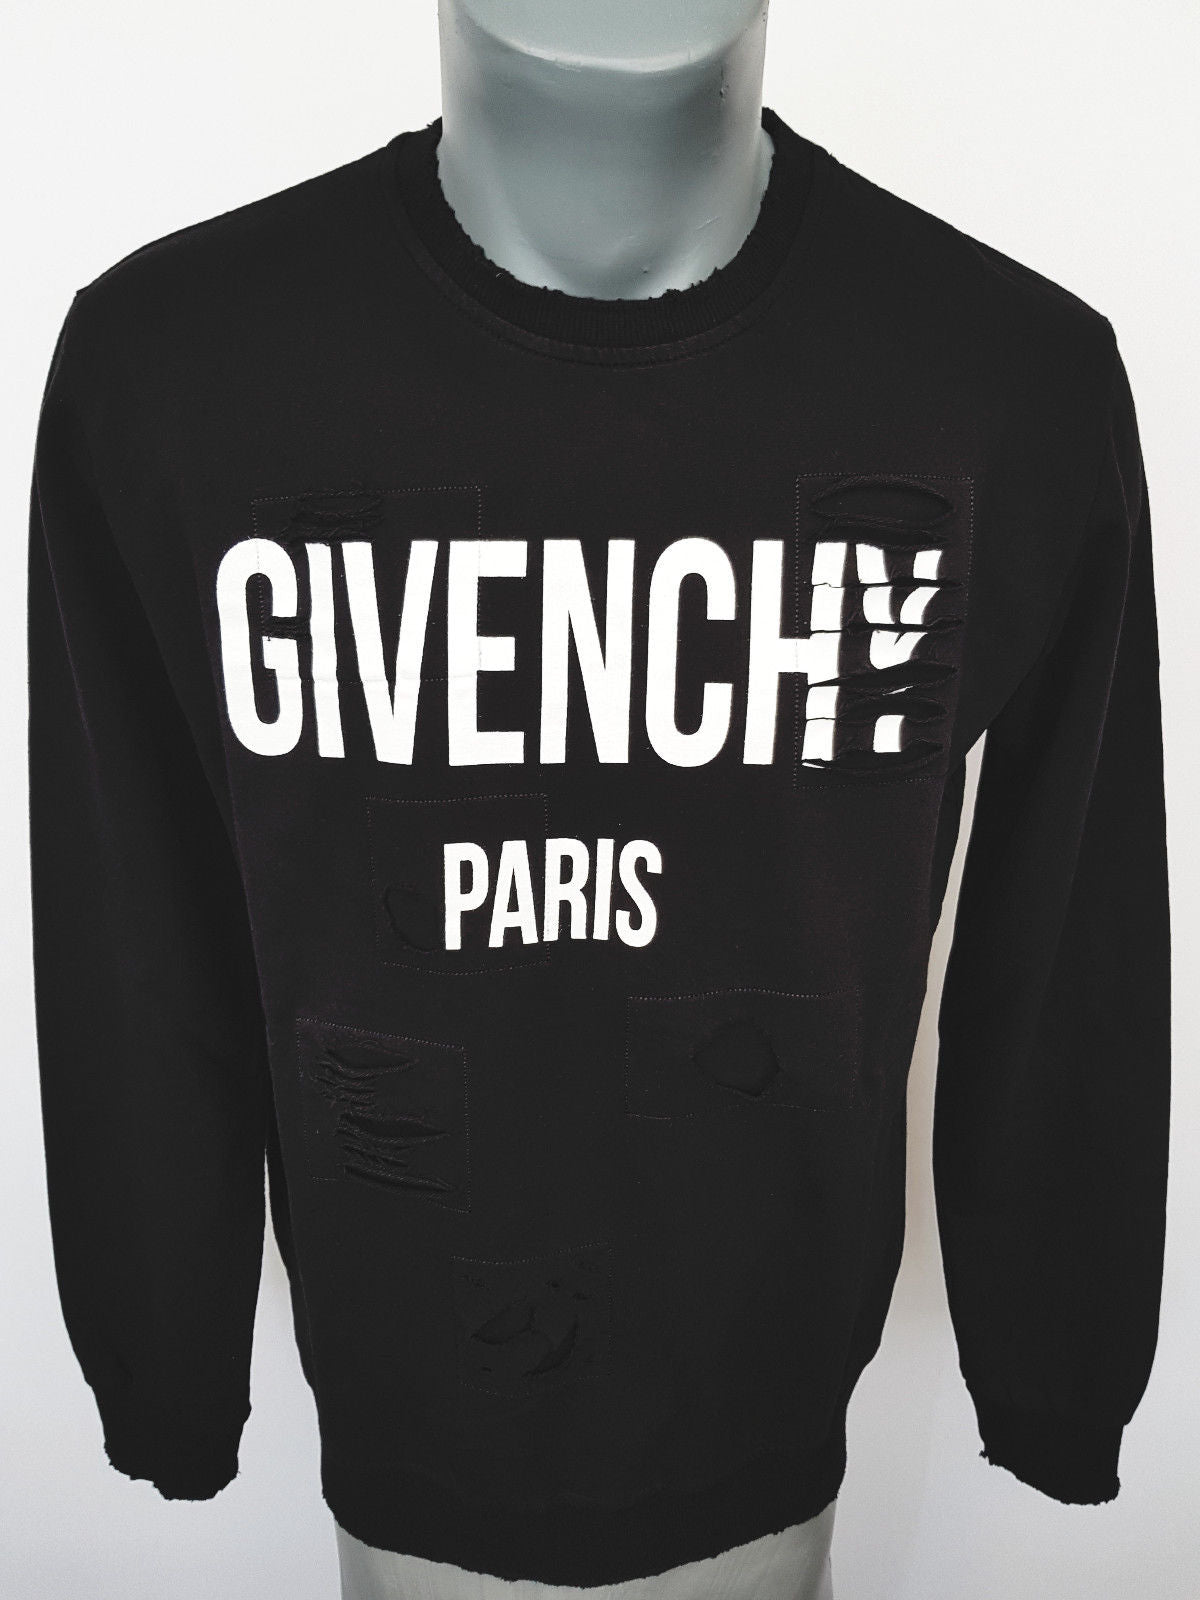 givenchy paris new tags brand sweatshirt sweater now black. Black Bedroom Furniture Sets. Home Design Ideas